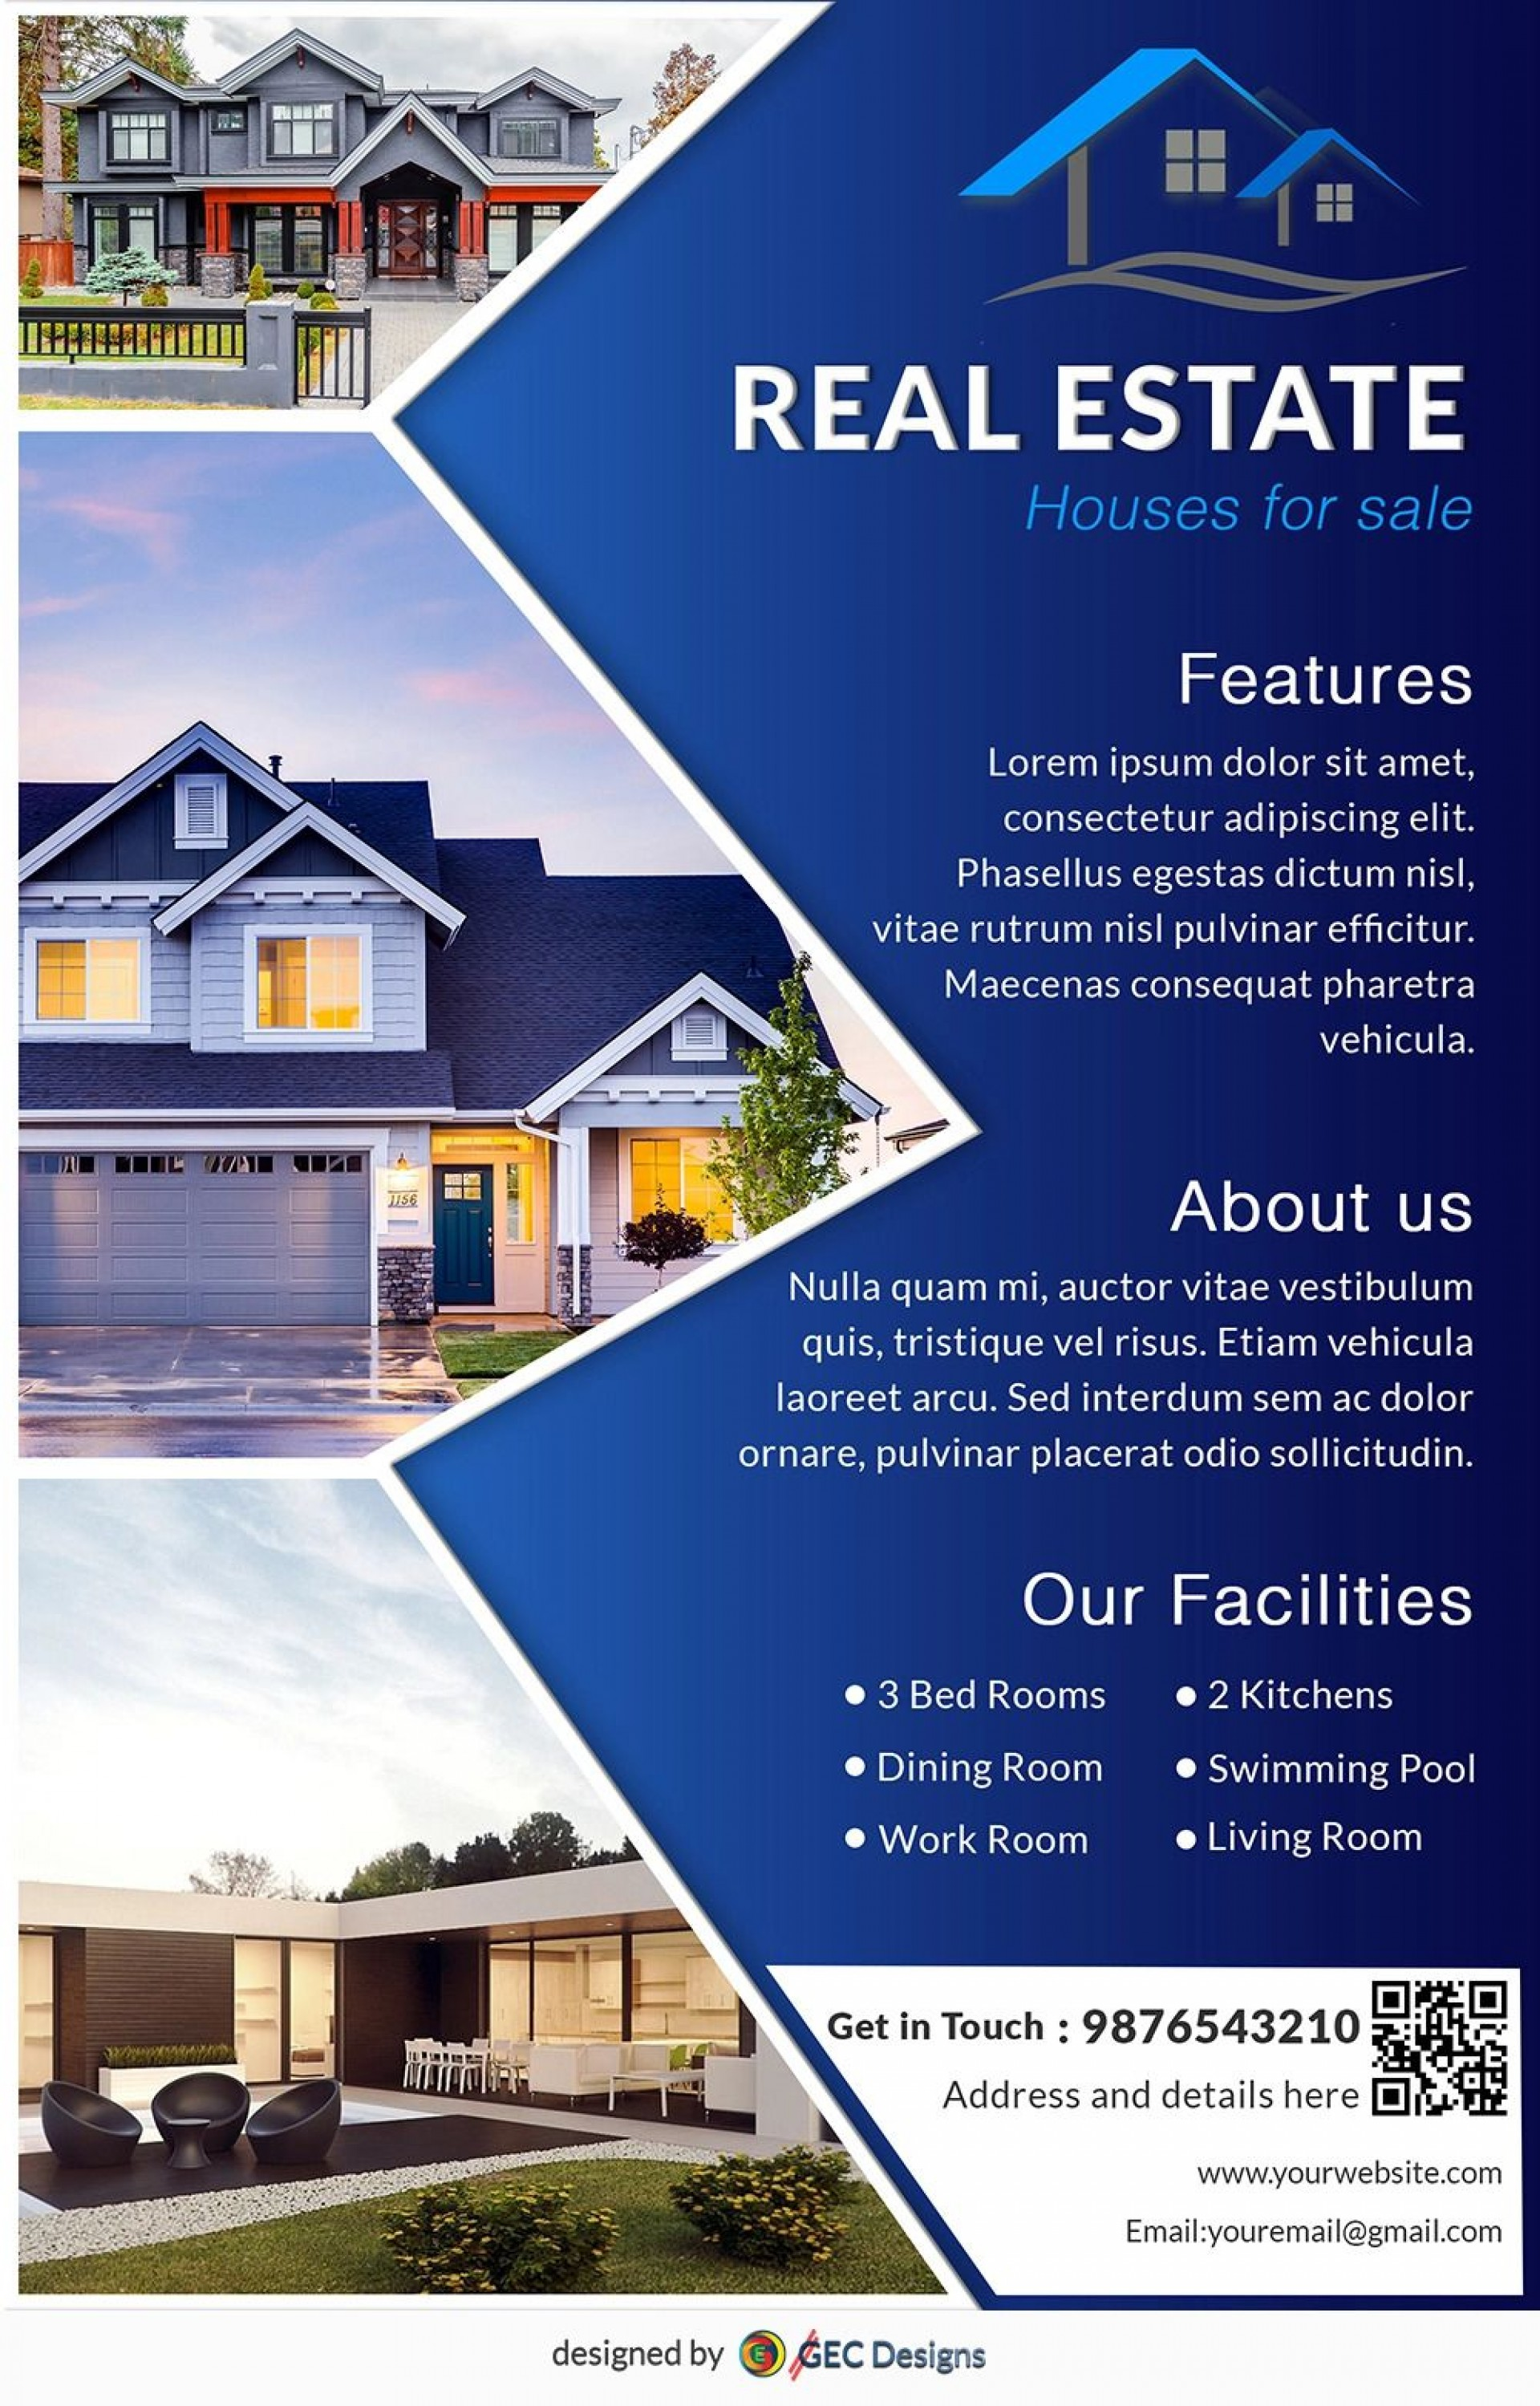 004 Top Real Estate Flyer Template Free Inspiration  Publisher Commercial Pdf Download1920